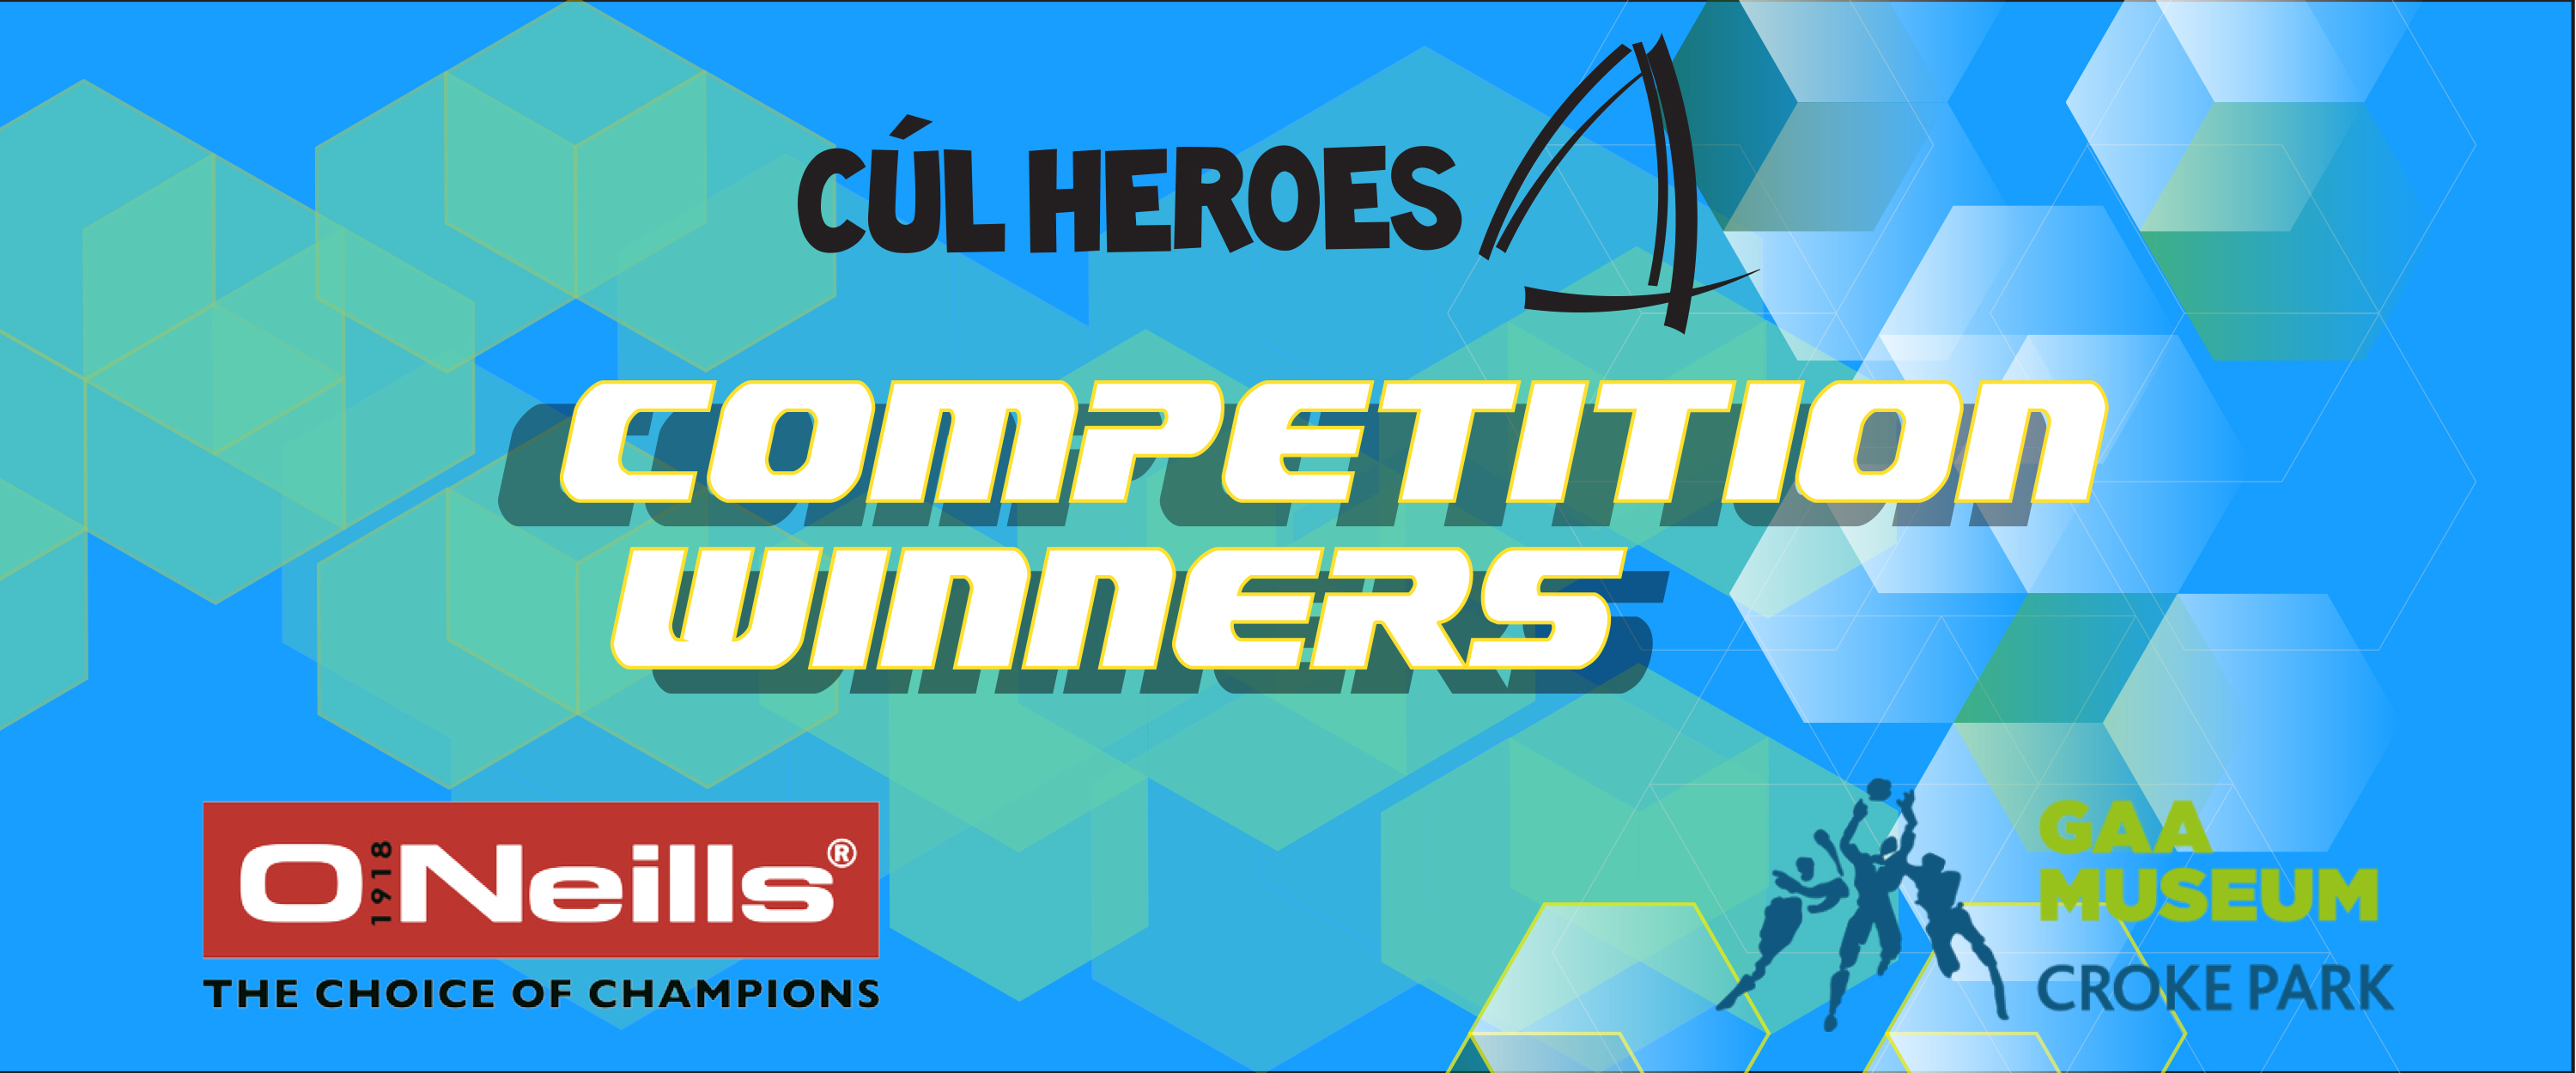 Enter your code competition winners – May 2016